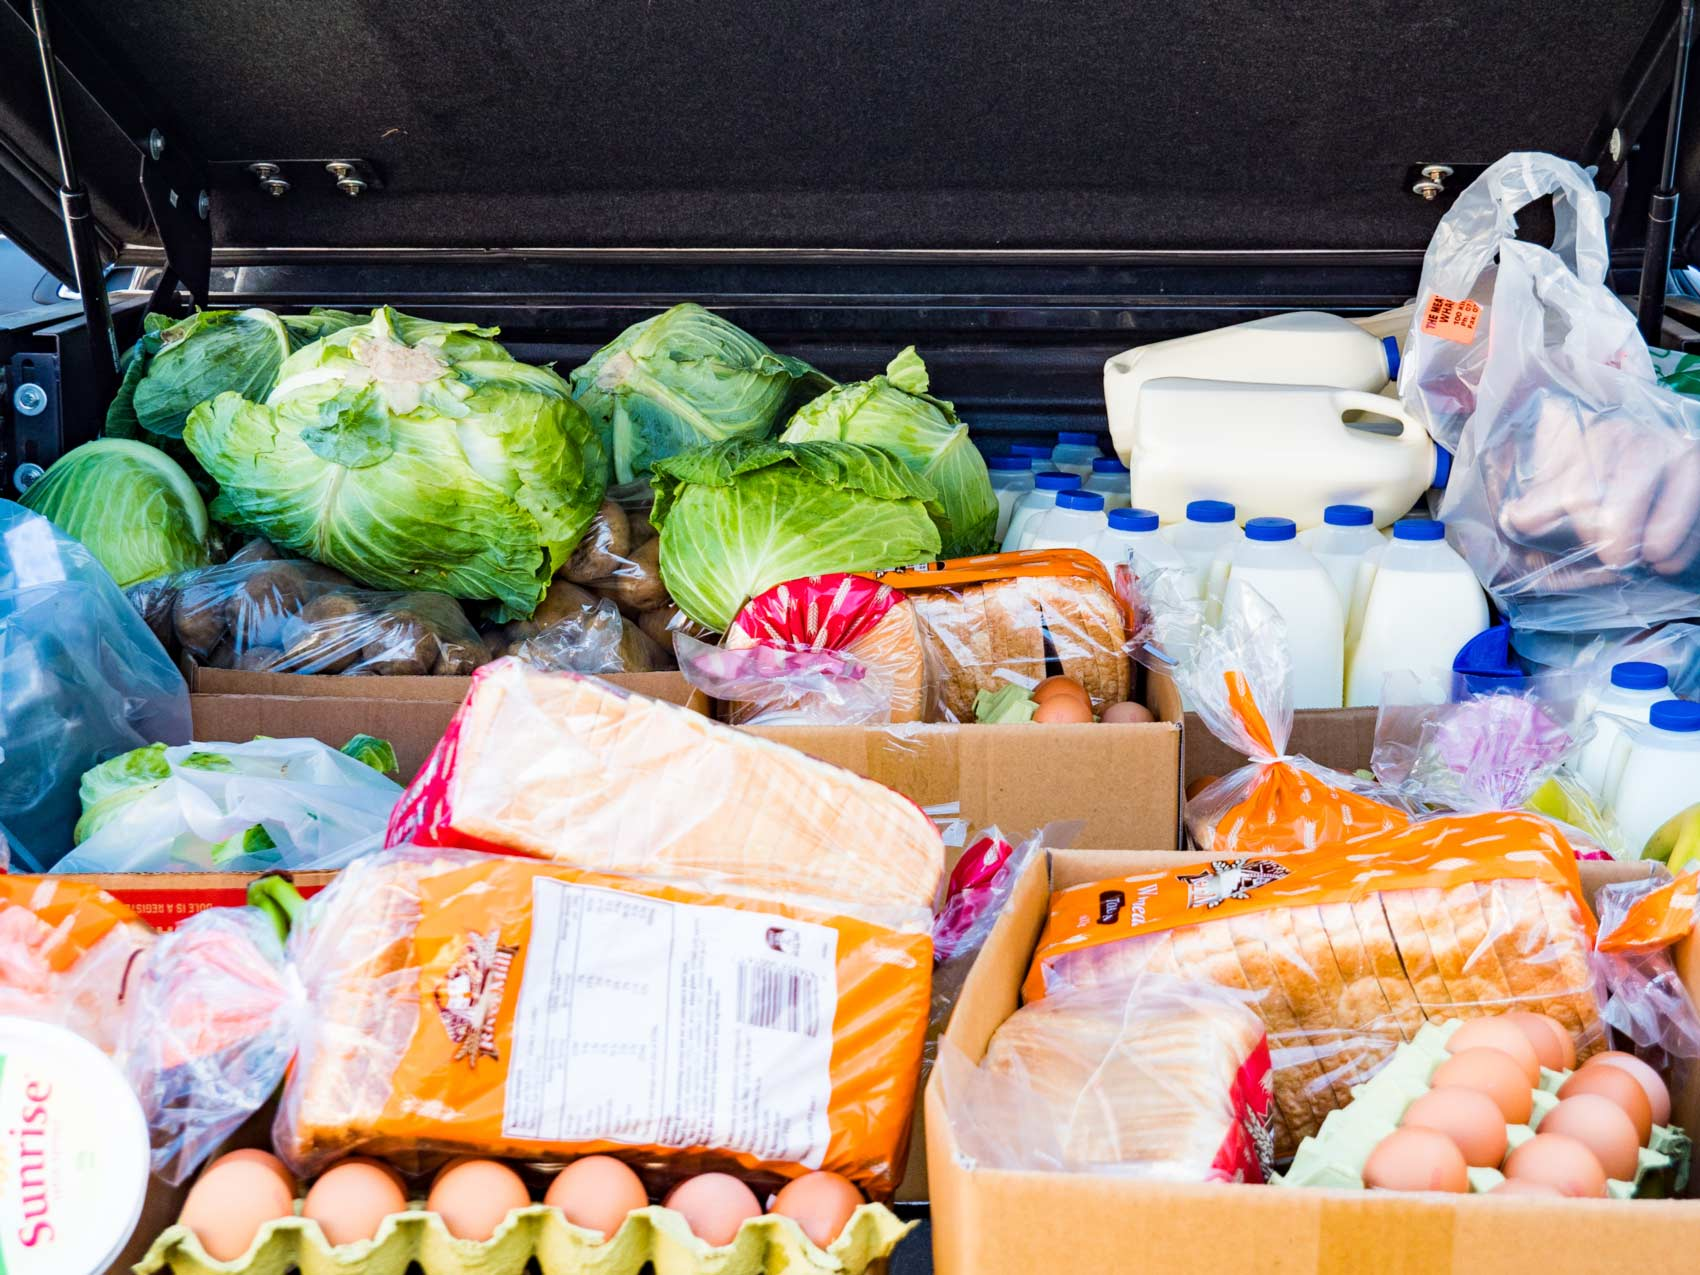 The trunk of a car filed with food